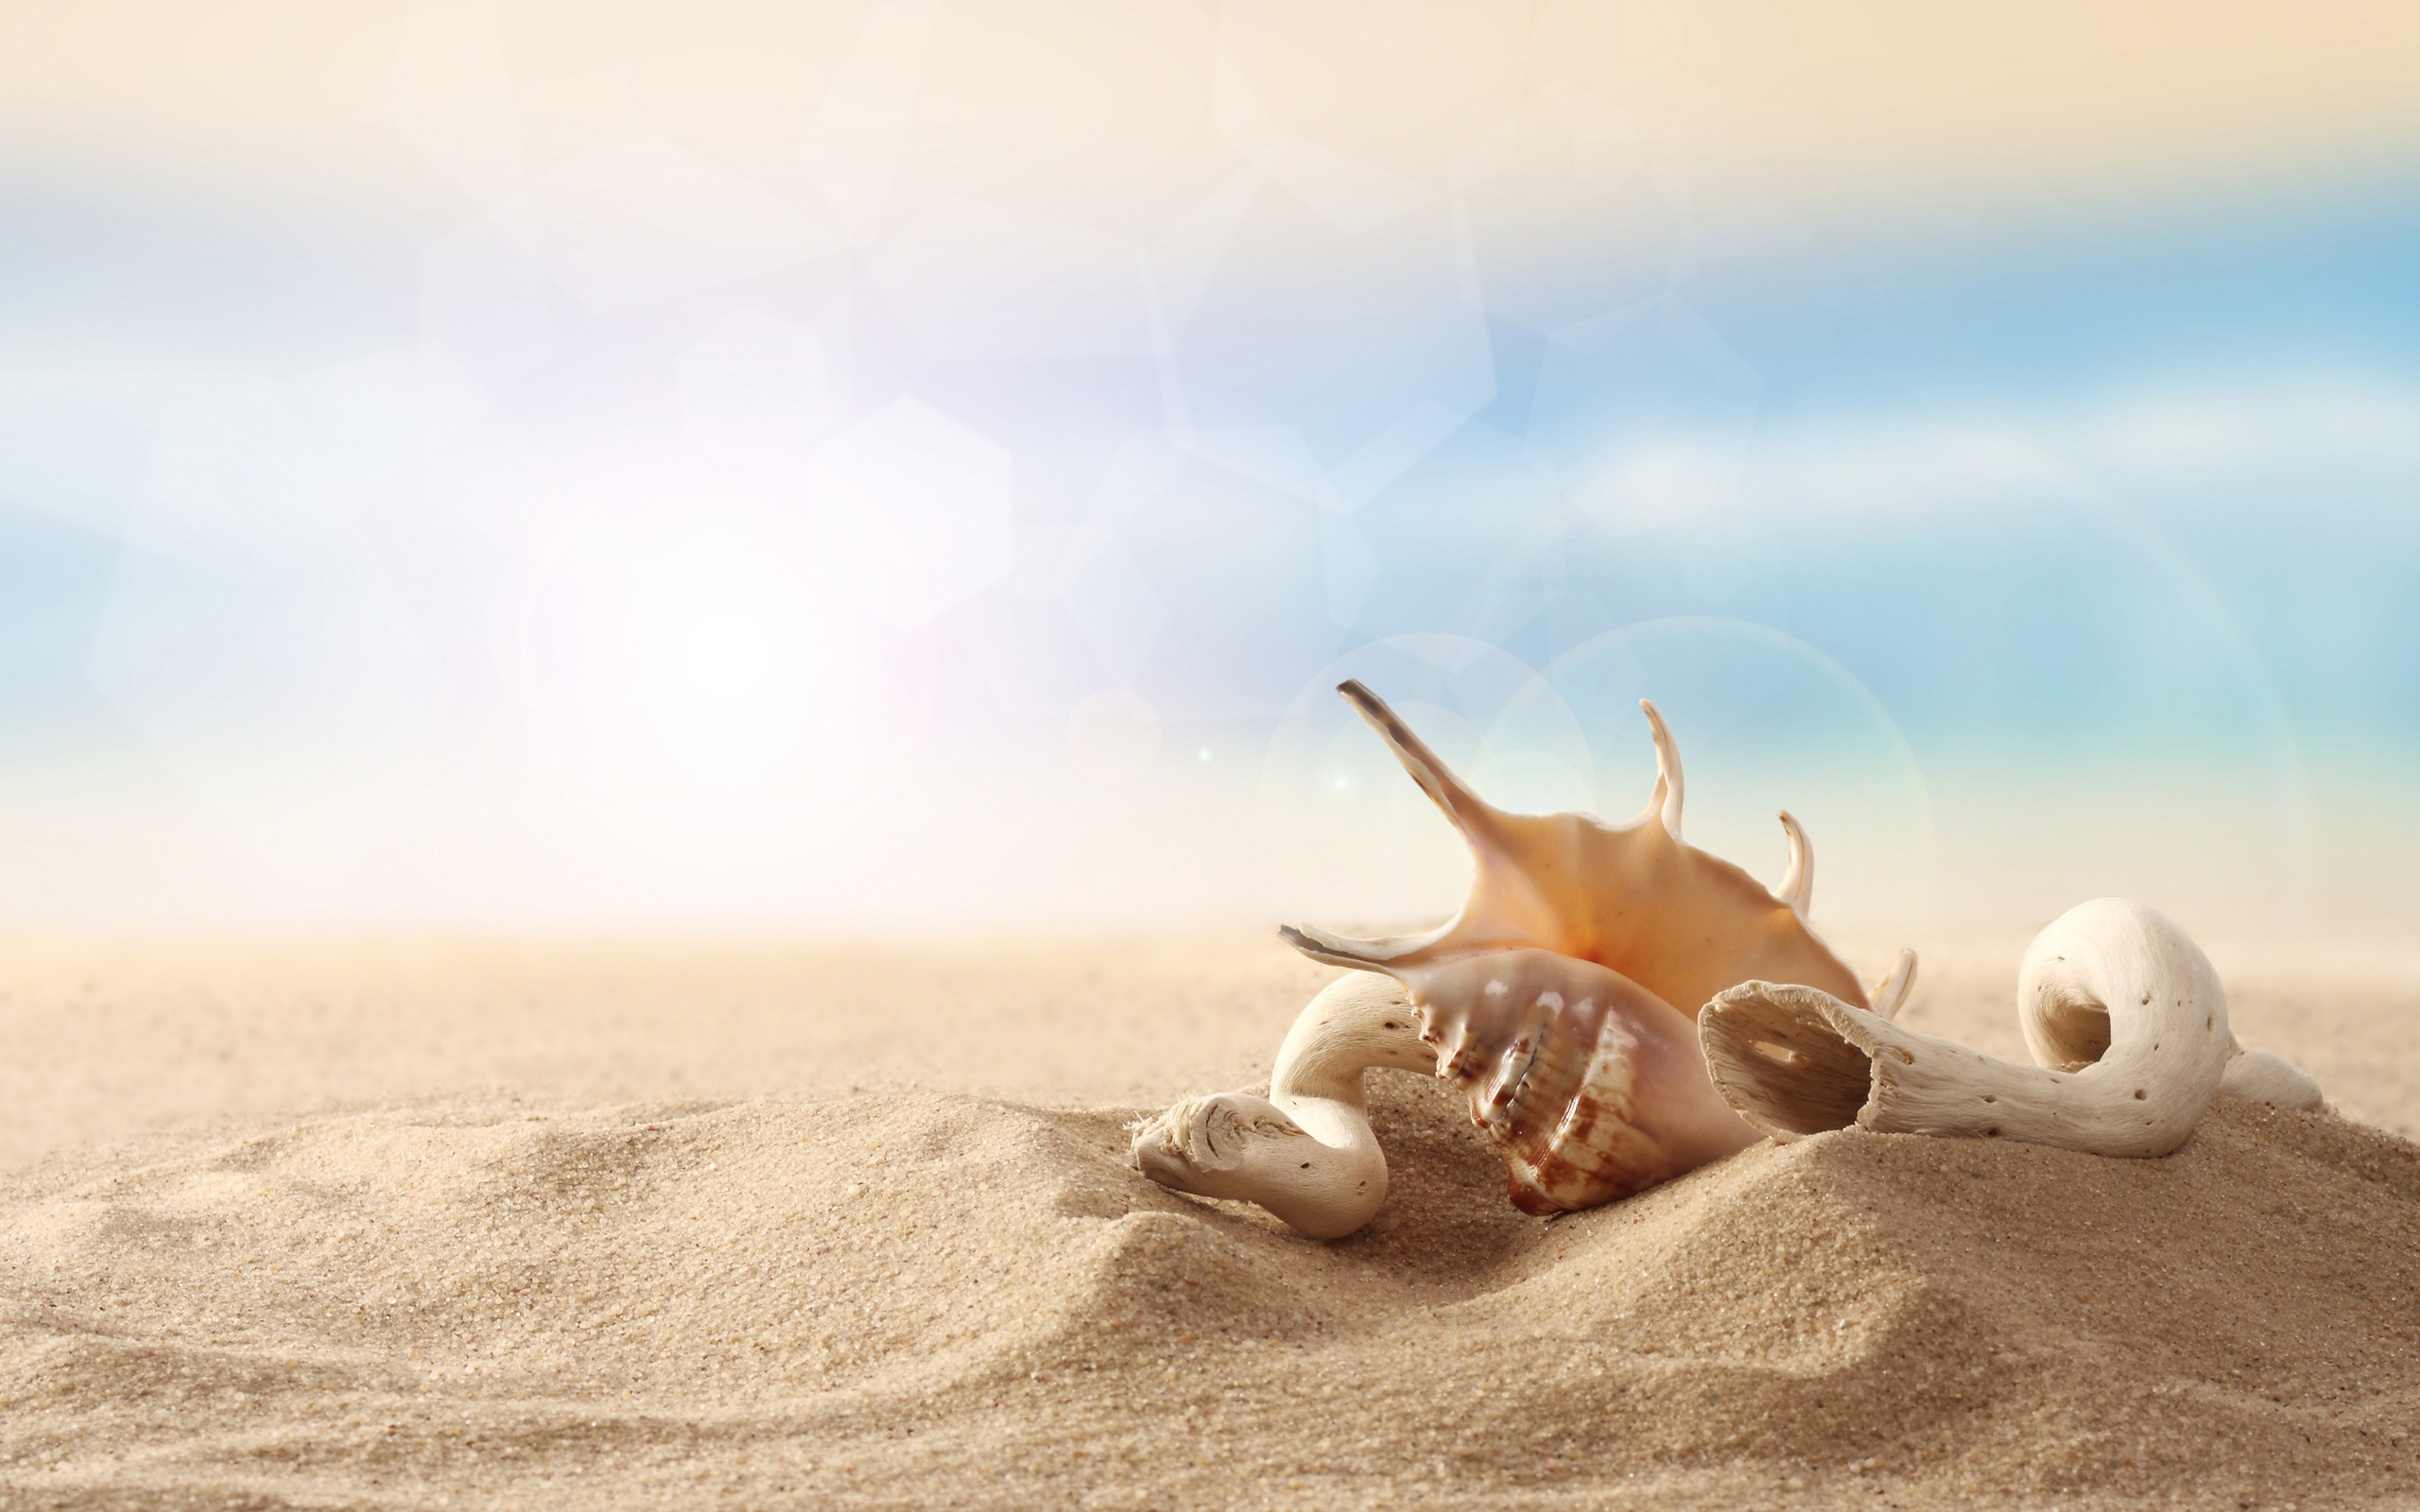 Seashell Sand Wallpaper